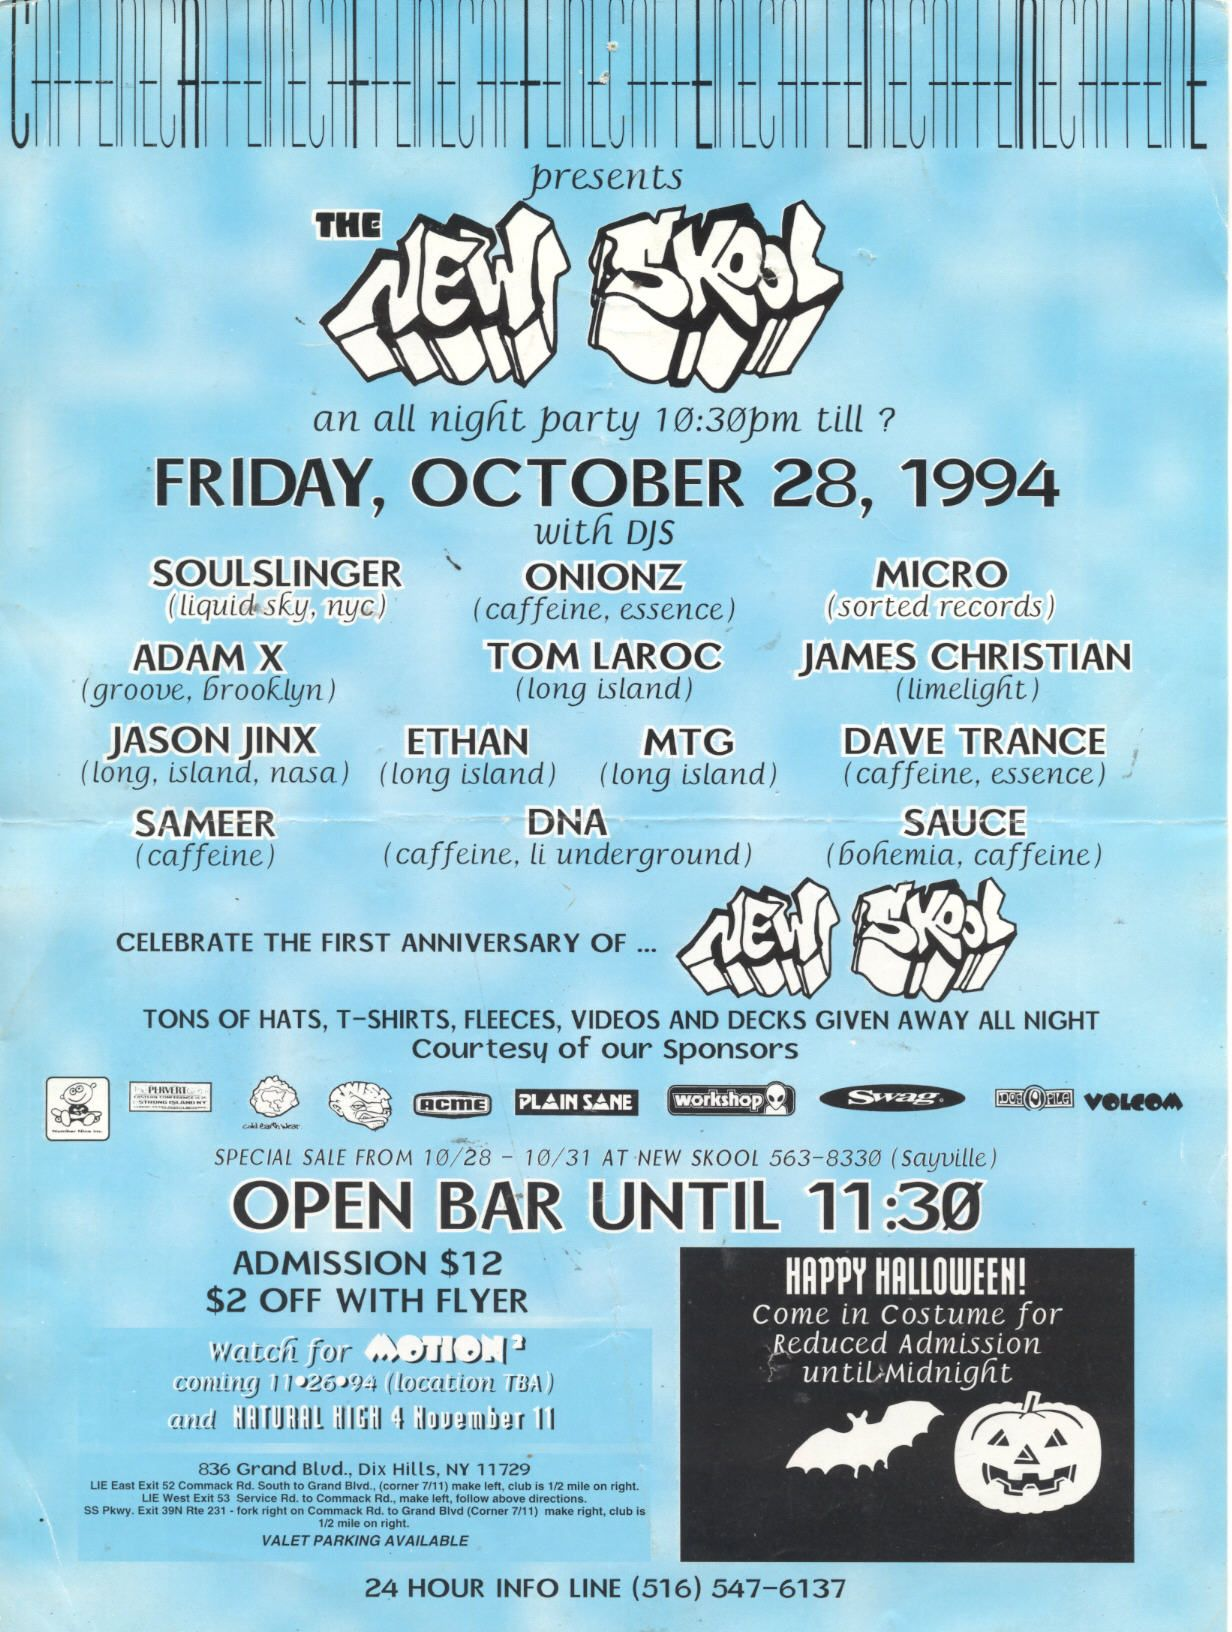 pinunderground exposed on old skool nyc rave flyers | pinterest